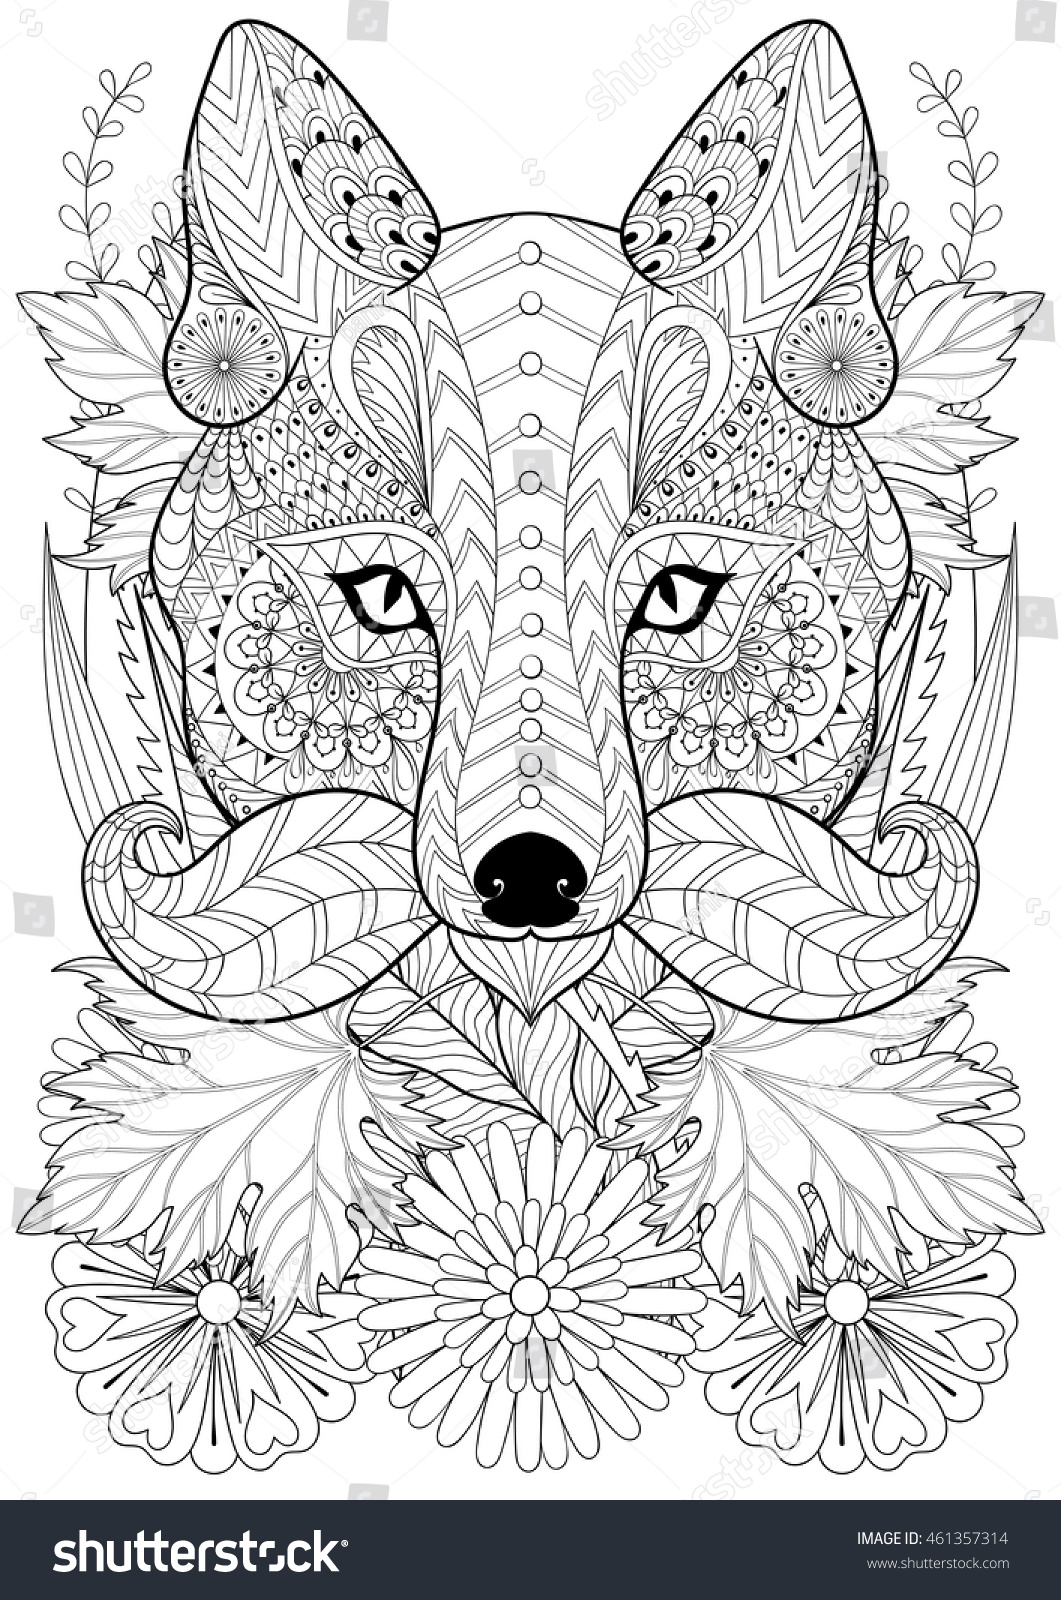 Animal Adult Coloring Pages Fox